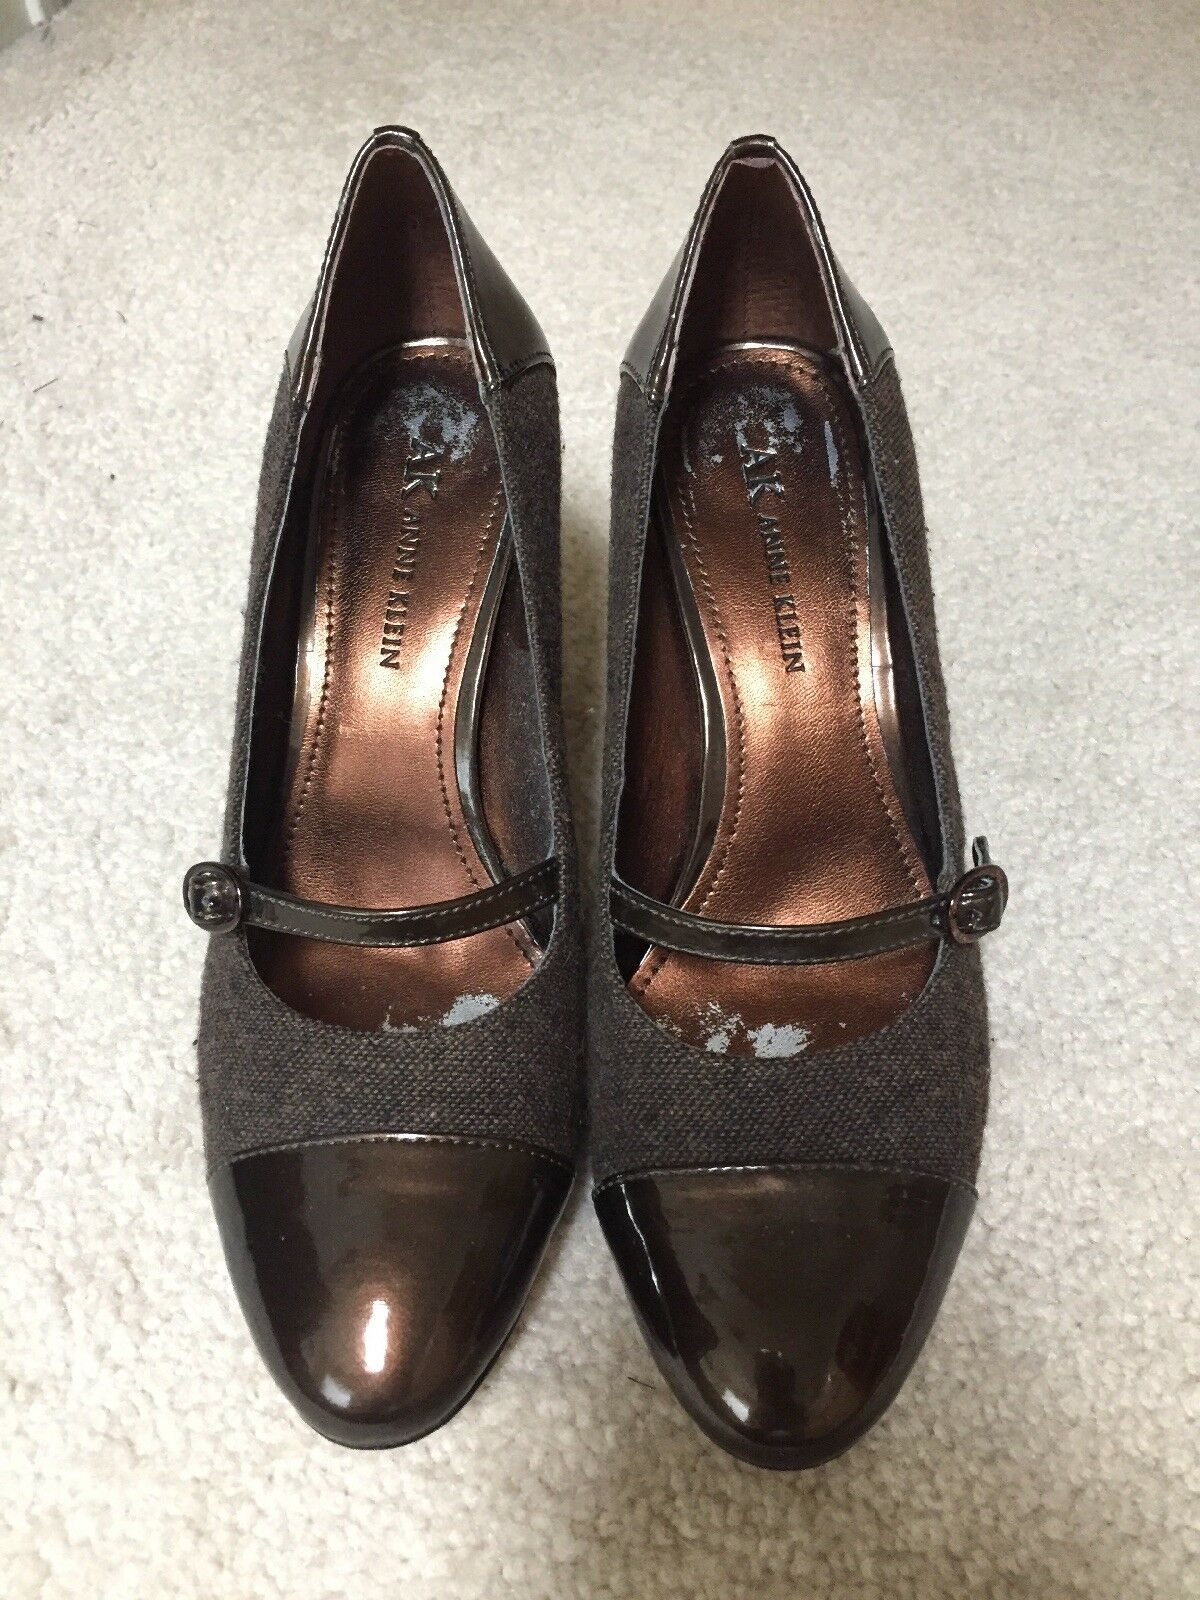 AK Anne Klein Shoes Size uppers 6 Sweet PEA Fabric uppers Size with Patent Leather Pumps 1a5832